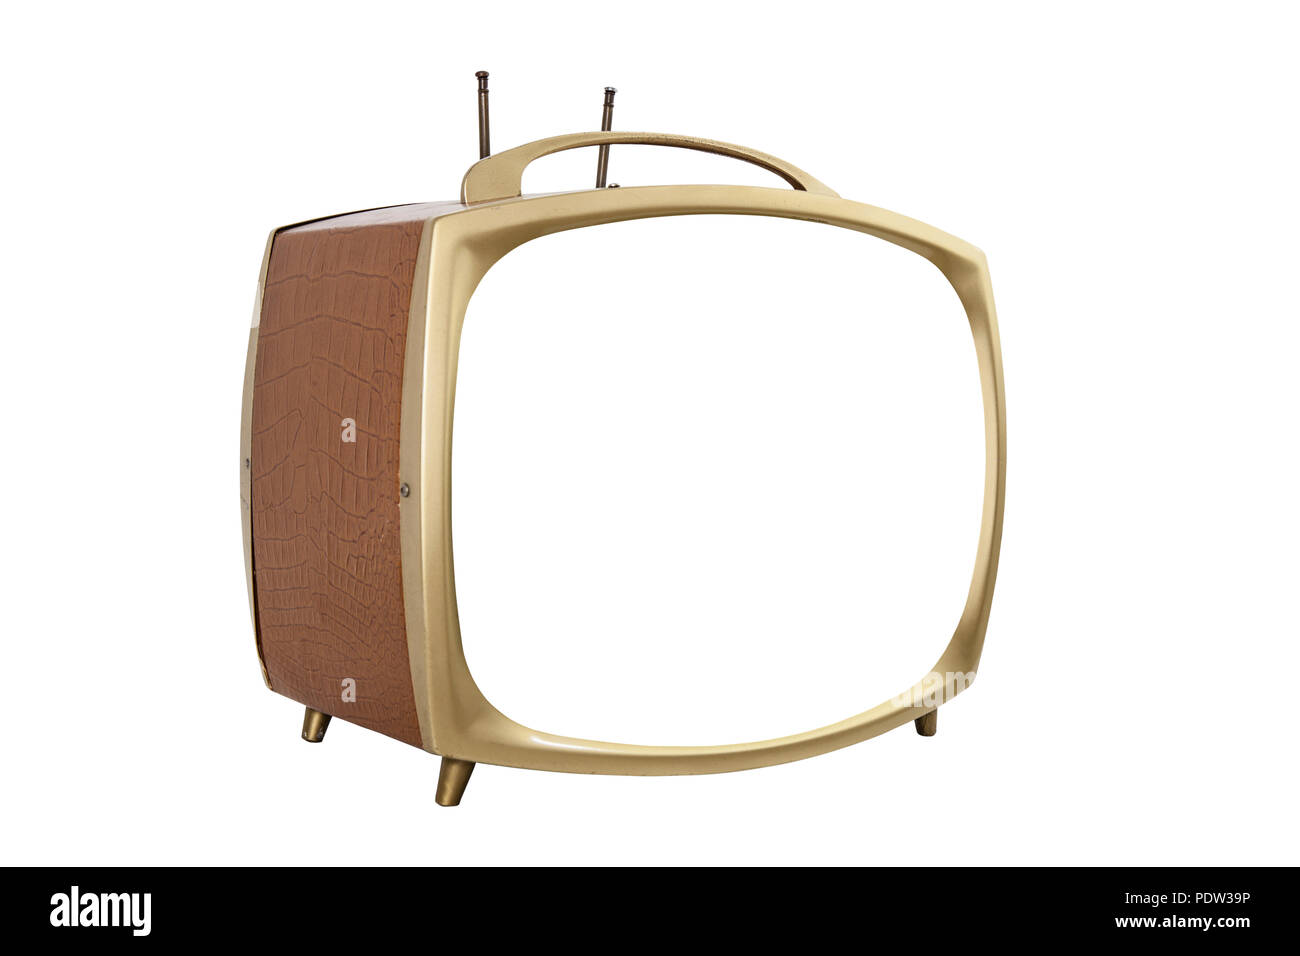 Retro 1950s portable television with cut out screen. - Stock Image